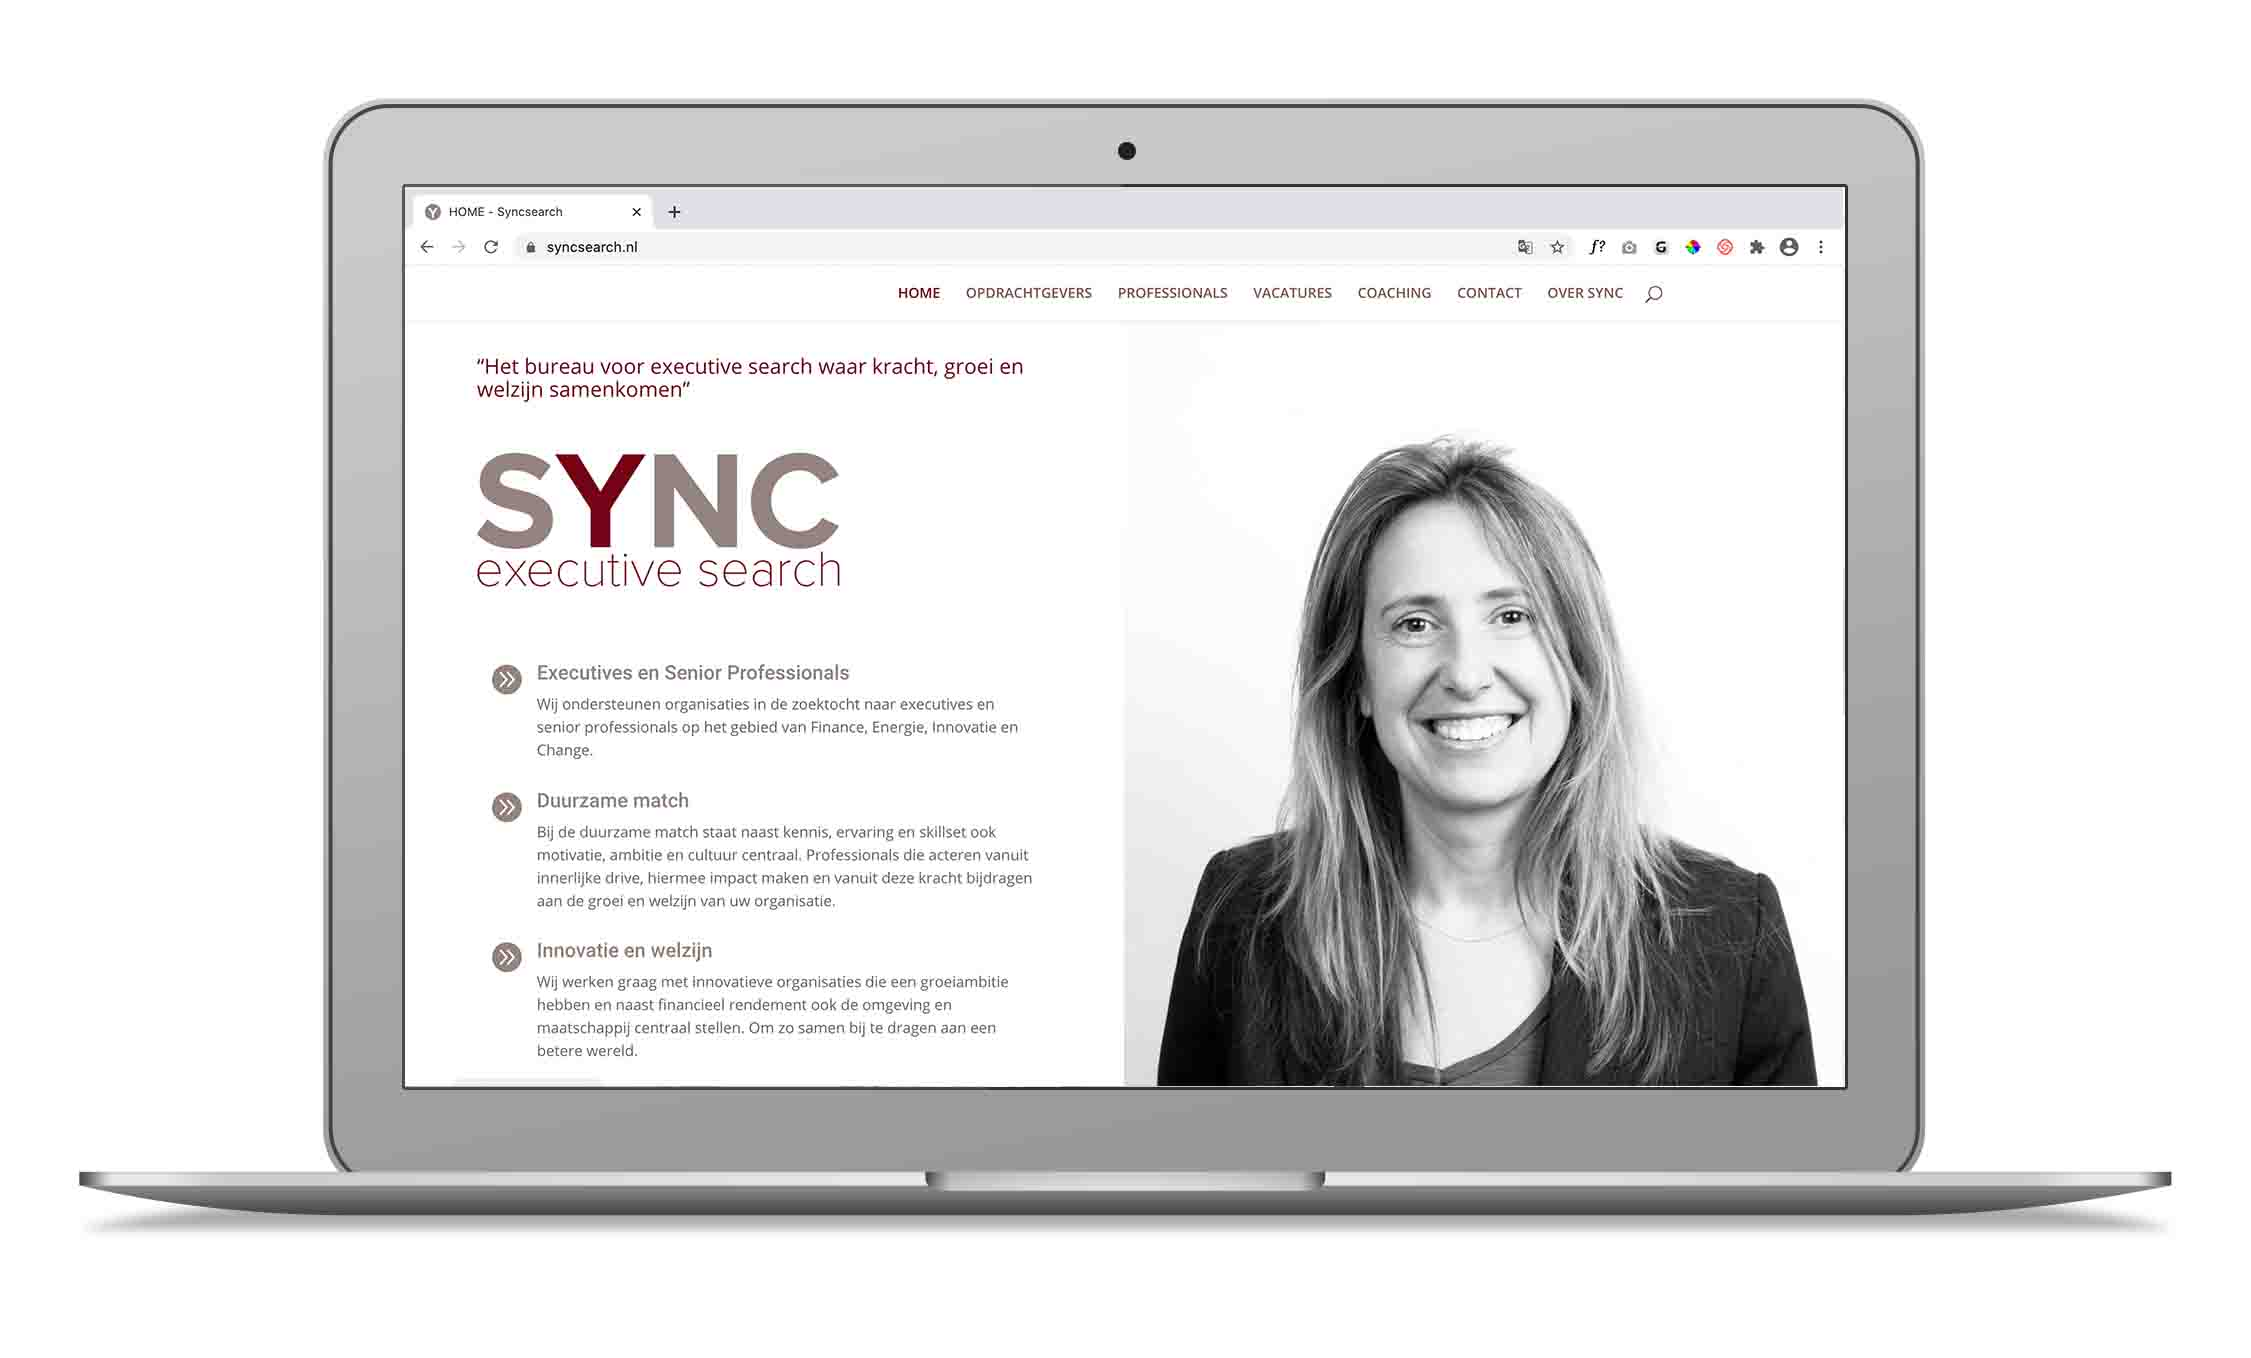 sync executive search